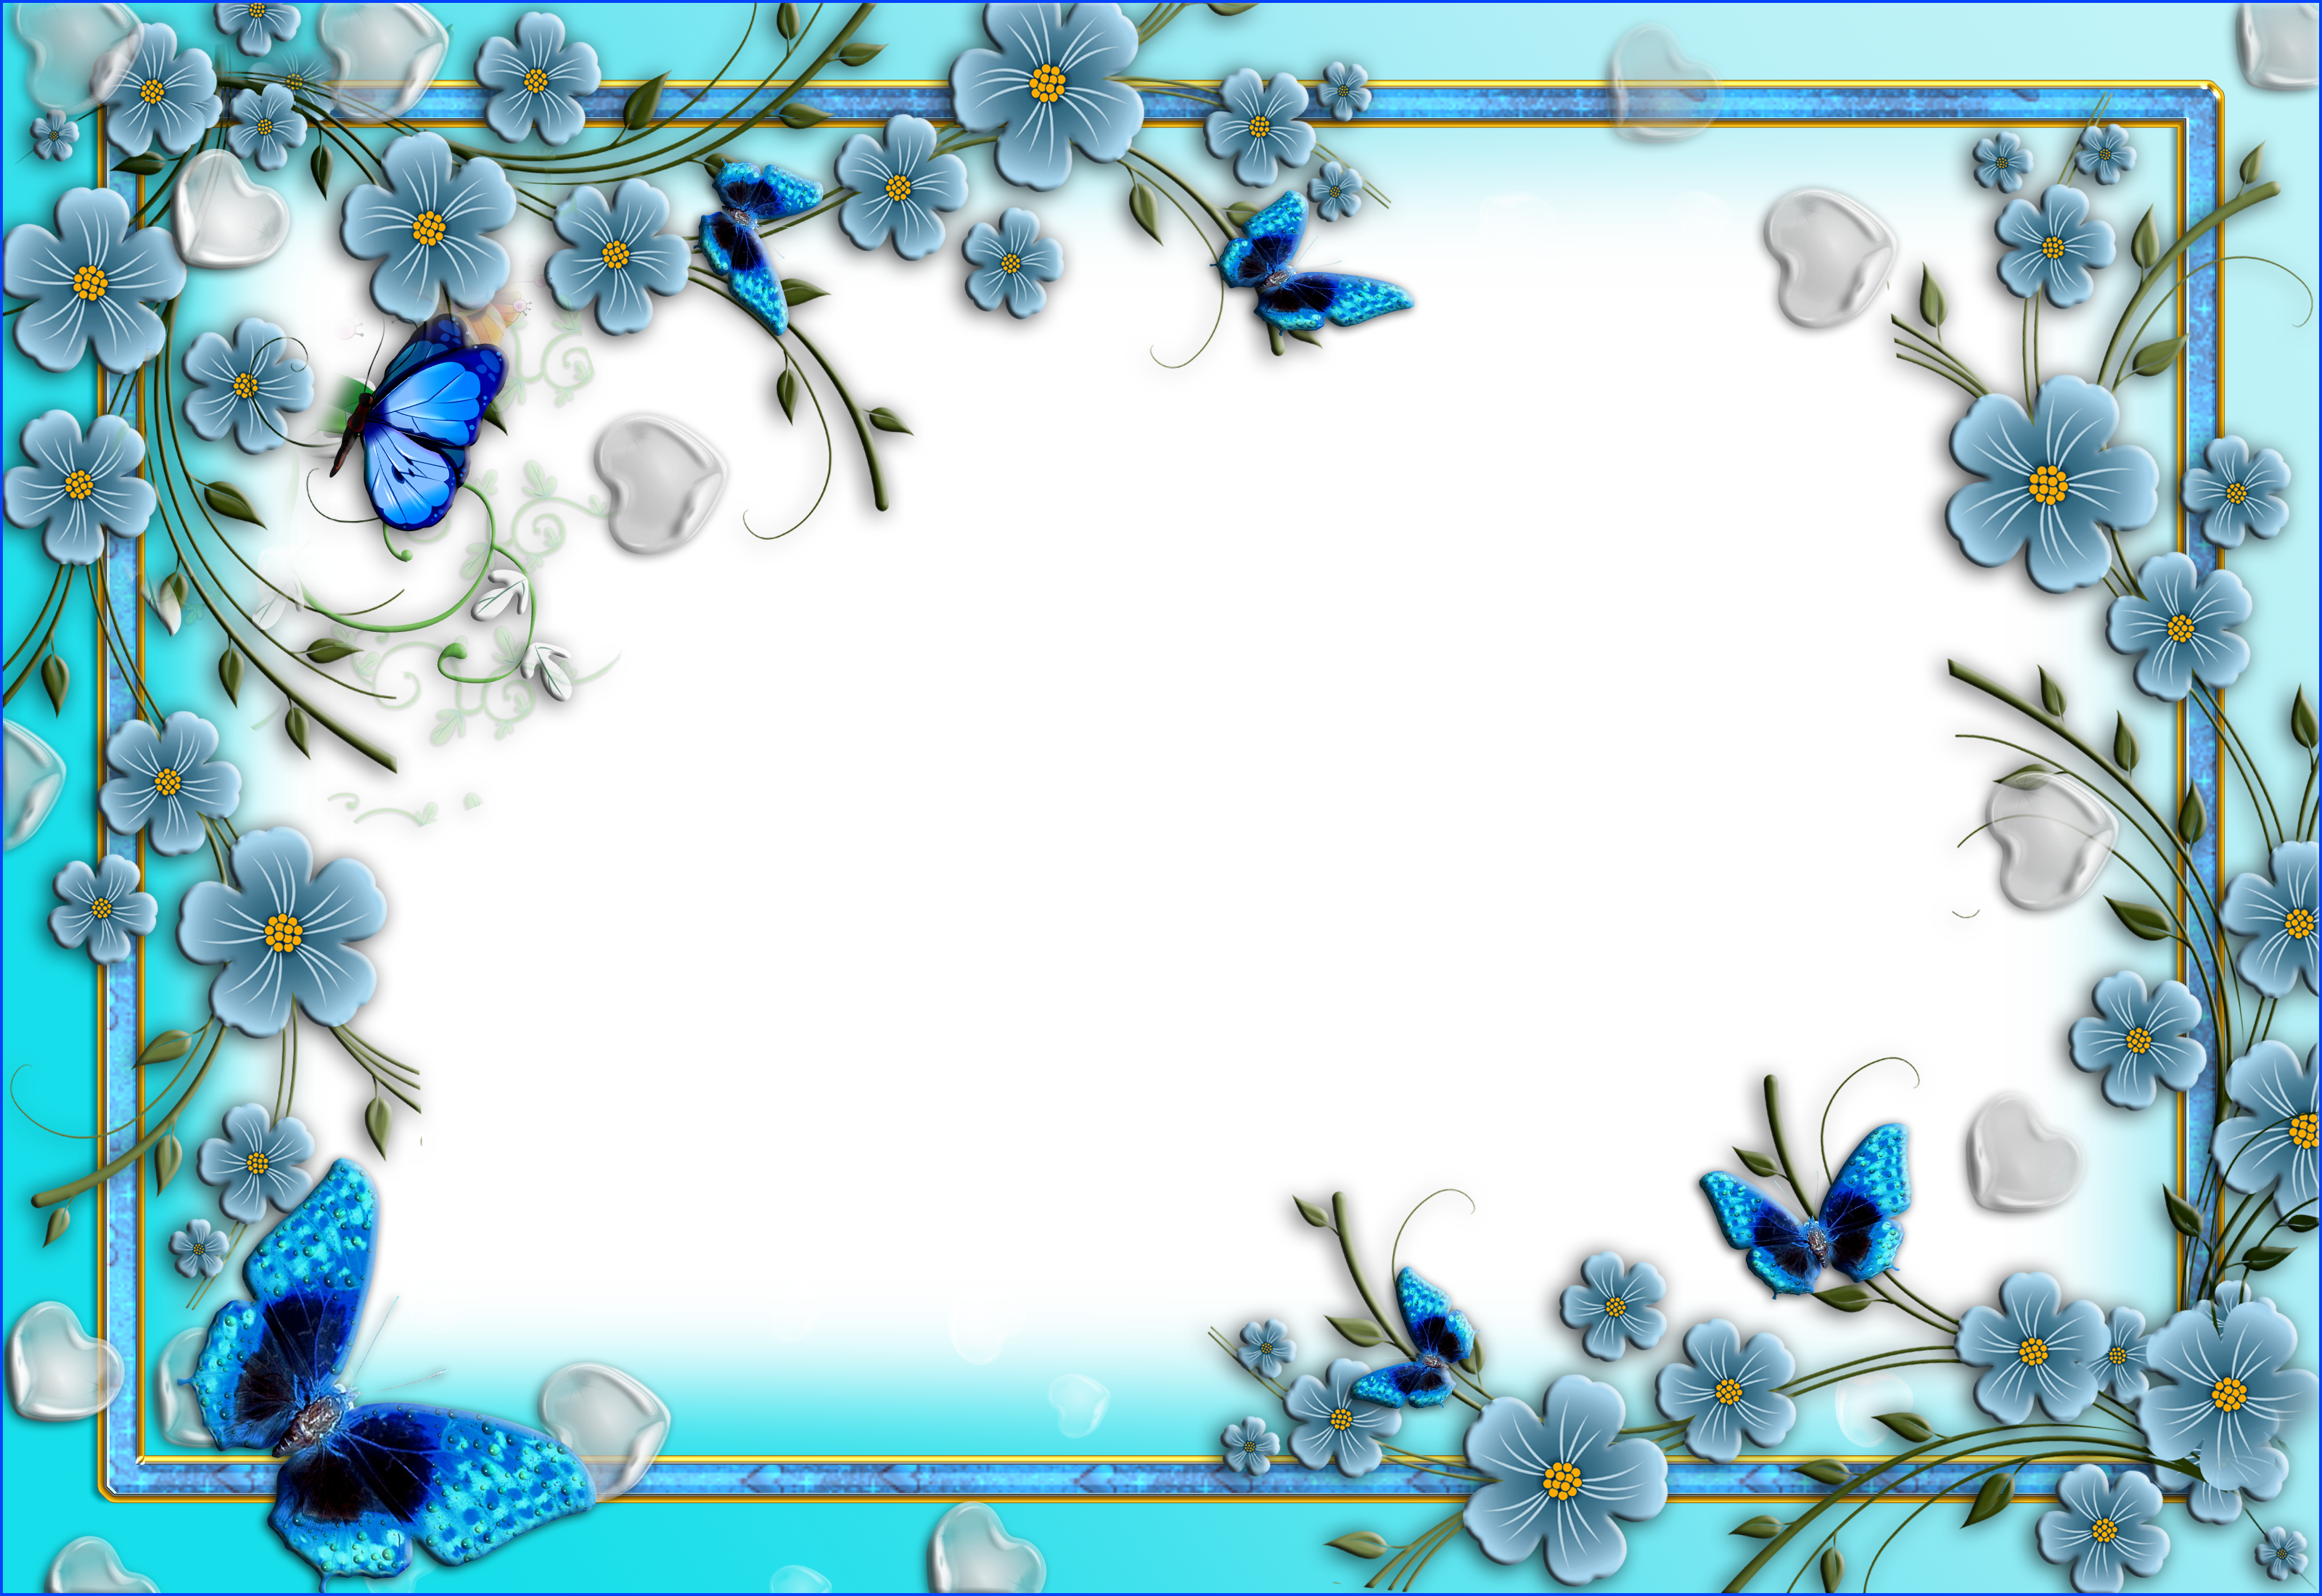 Blue flower border clipart banner freeuse stock Blue Flowers Transparent PNG Photo Frame with Hearts and Butterflies ... banner freeuse stock